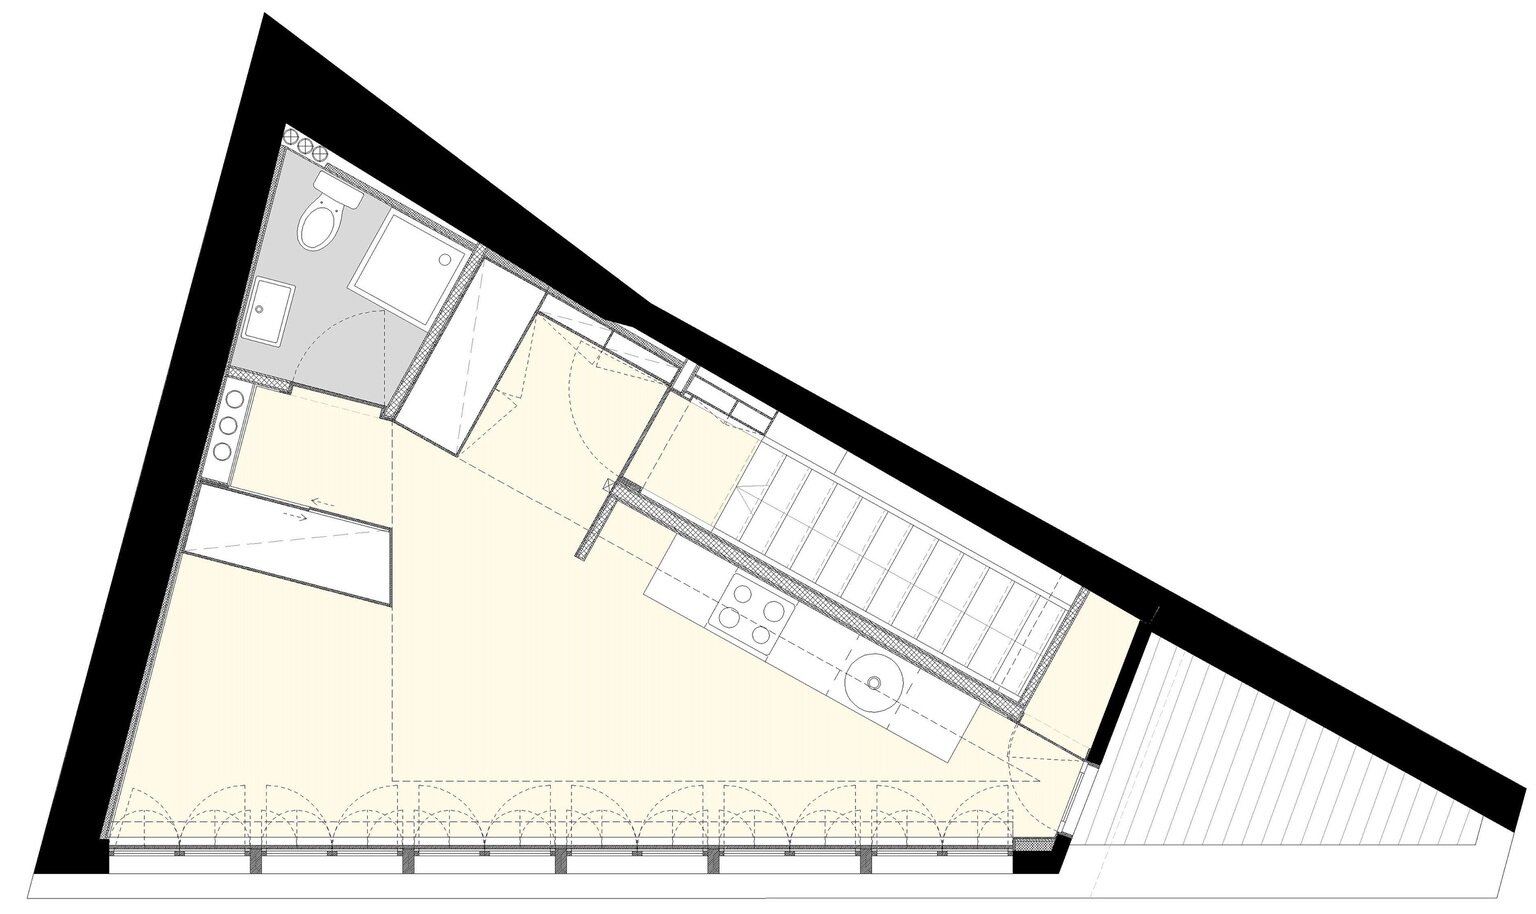 S. Victor Lofts - A2OFFICE - Portugal - Floor Plan - Humble Homes